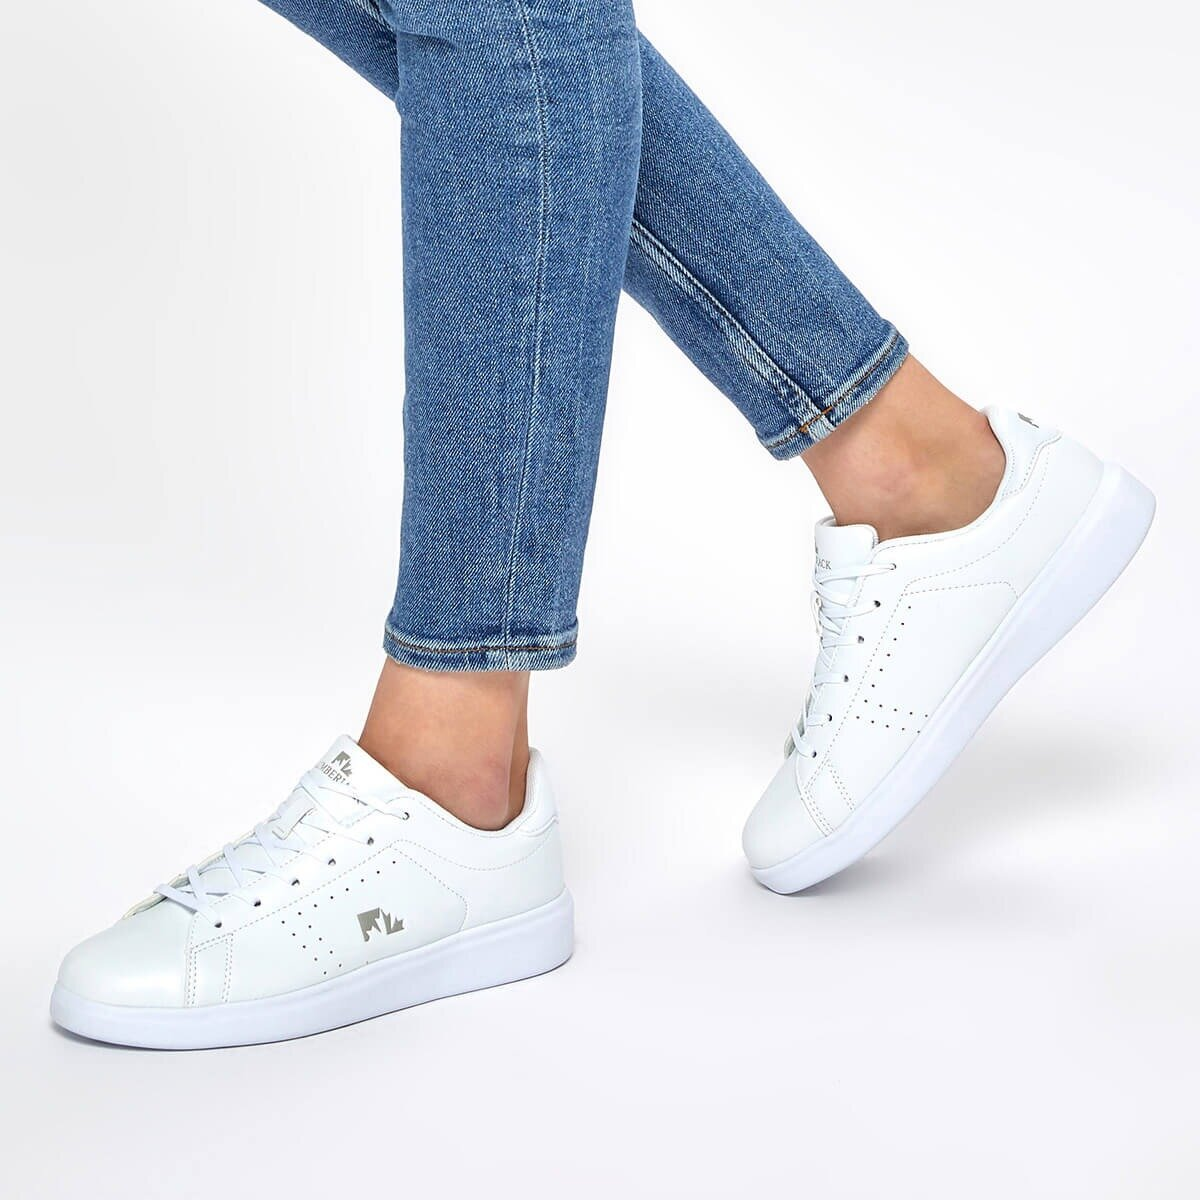 FLO HELENA 9PR White Women 'S Sneaker Shoes LUMBERJACK